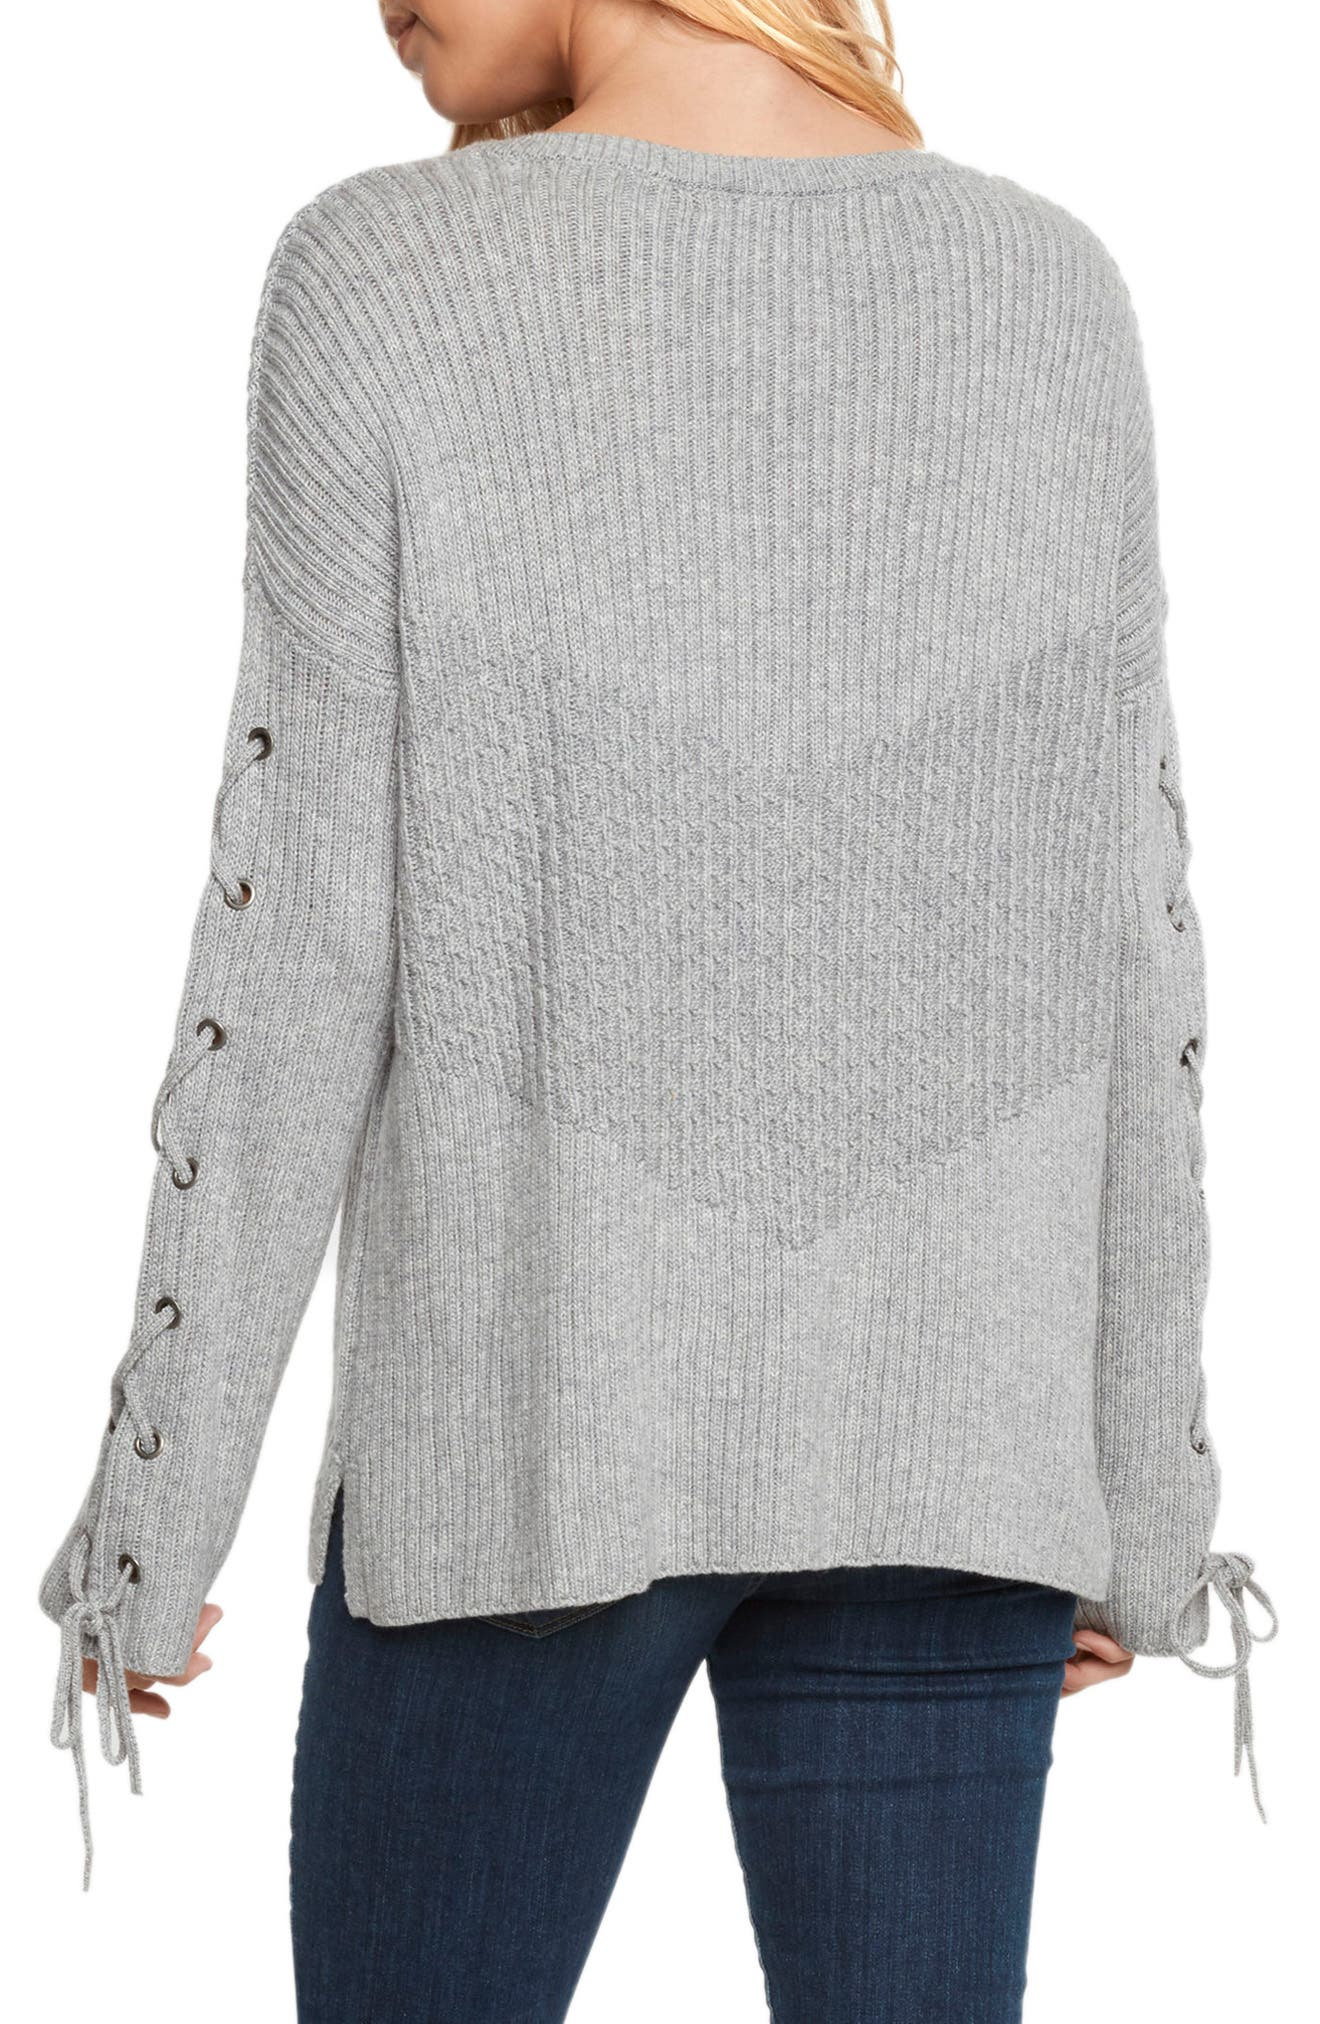 Lace-Up Sleeve Sweater,                             Alternate thumbnail 2, color,